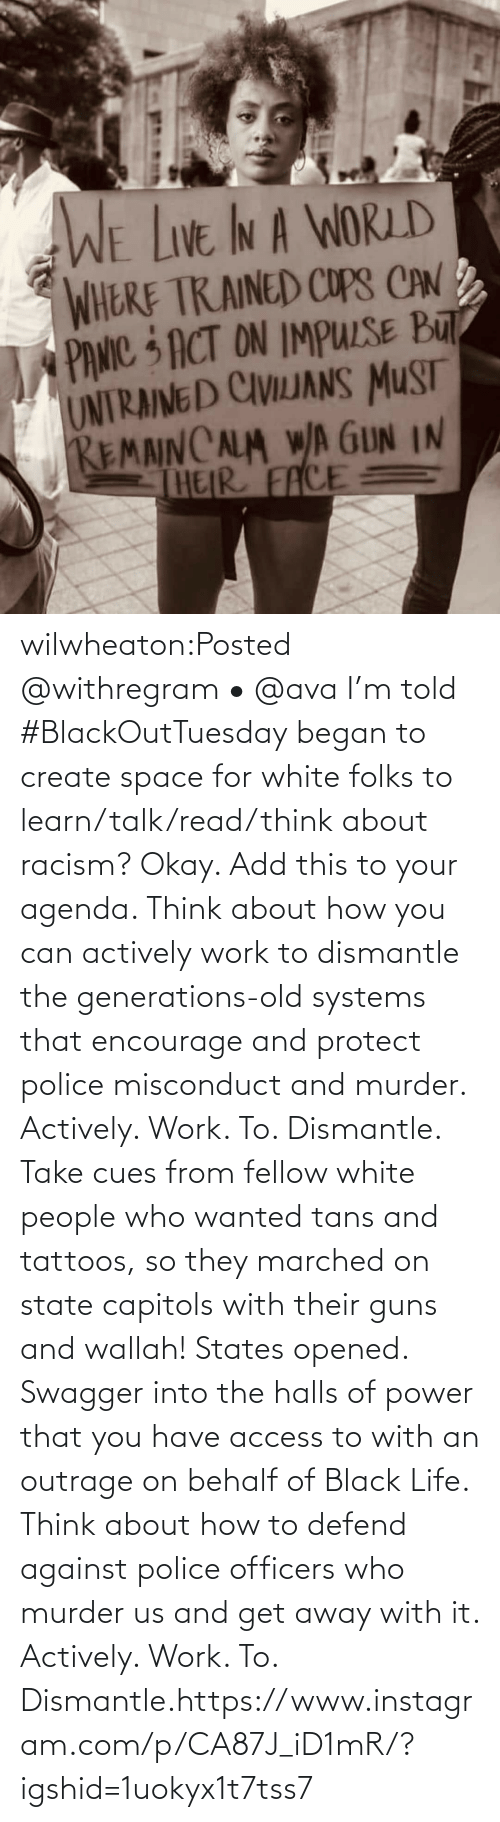 Learn: wilwheaton:Posted @withregram • @ava I'm told #BlackOutTuesday began to create space for white folks to learn/talk/read/think about racism? Okay. Add this to your agenda. Think about how you can actively work to dismantle the generations-old systems that encourage and protect police misconduct and murder. Actively. Work. To. Dismantle. Take cues from fellow white people who wanted tans and tattoos, so they marched on state capitols with their guns and wallah! States opened. Swagger into the halls of power that you have access to with an outrage on behalf of Black Life. Think about how to defend against police officers who murder us and get away with it. Actively. Work. To. Dismantle.https://www.instagram.com/p/CA87J_iD1mR/?igshid=1uokyx1t7tss7